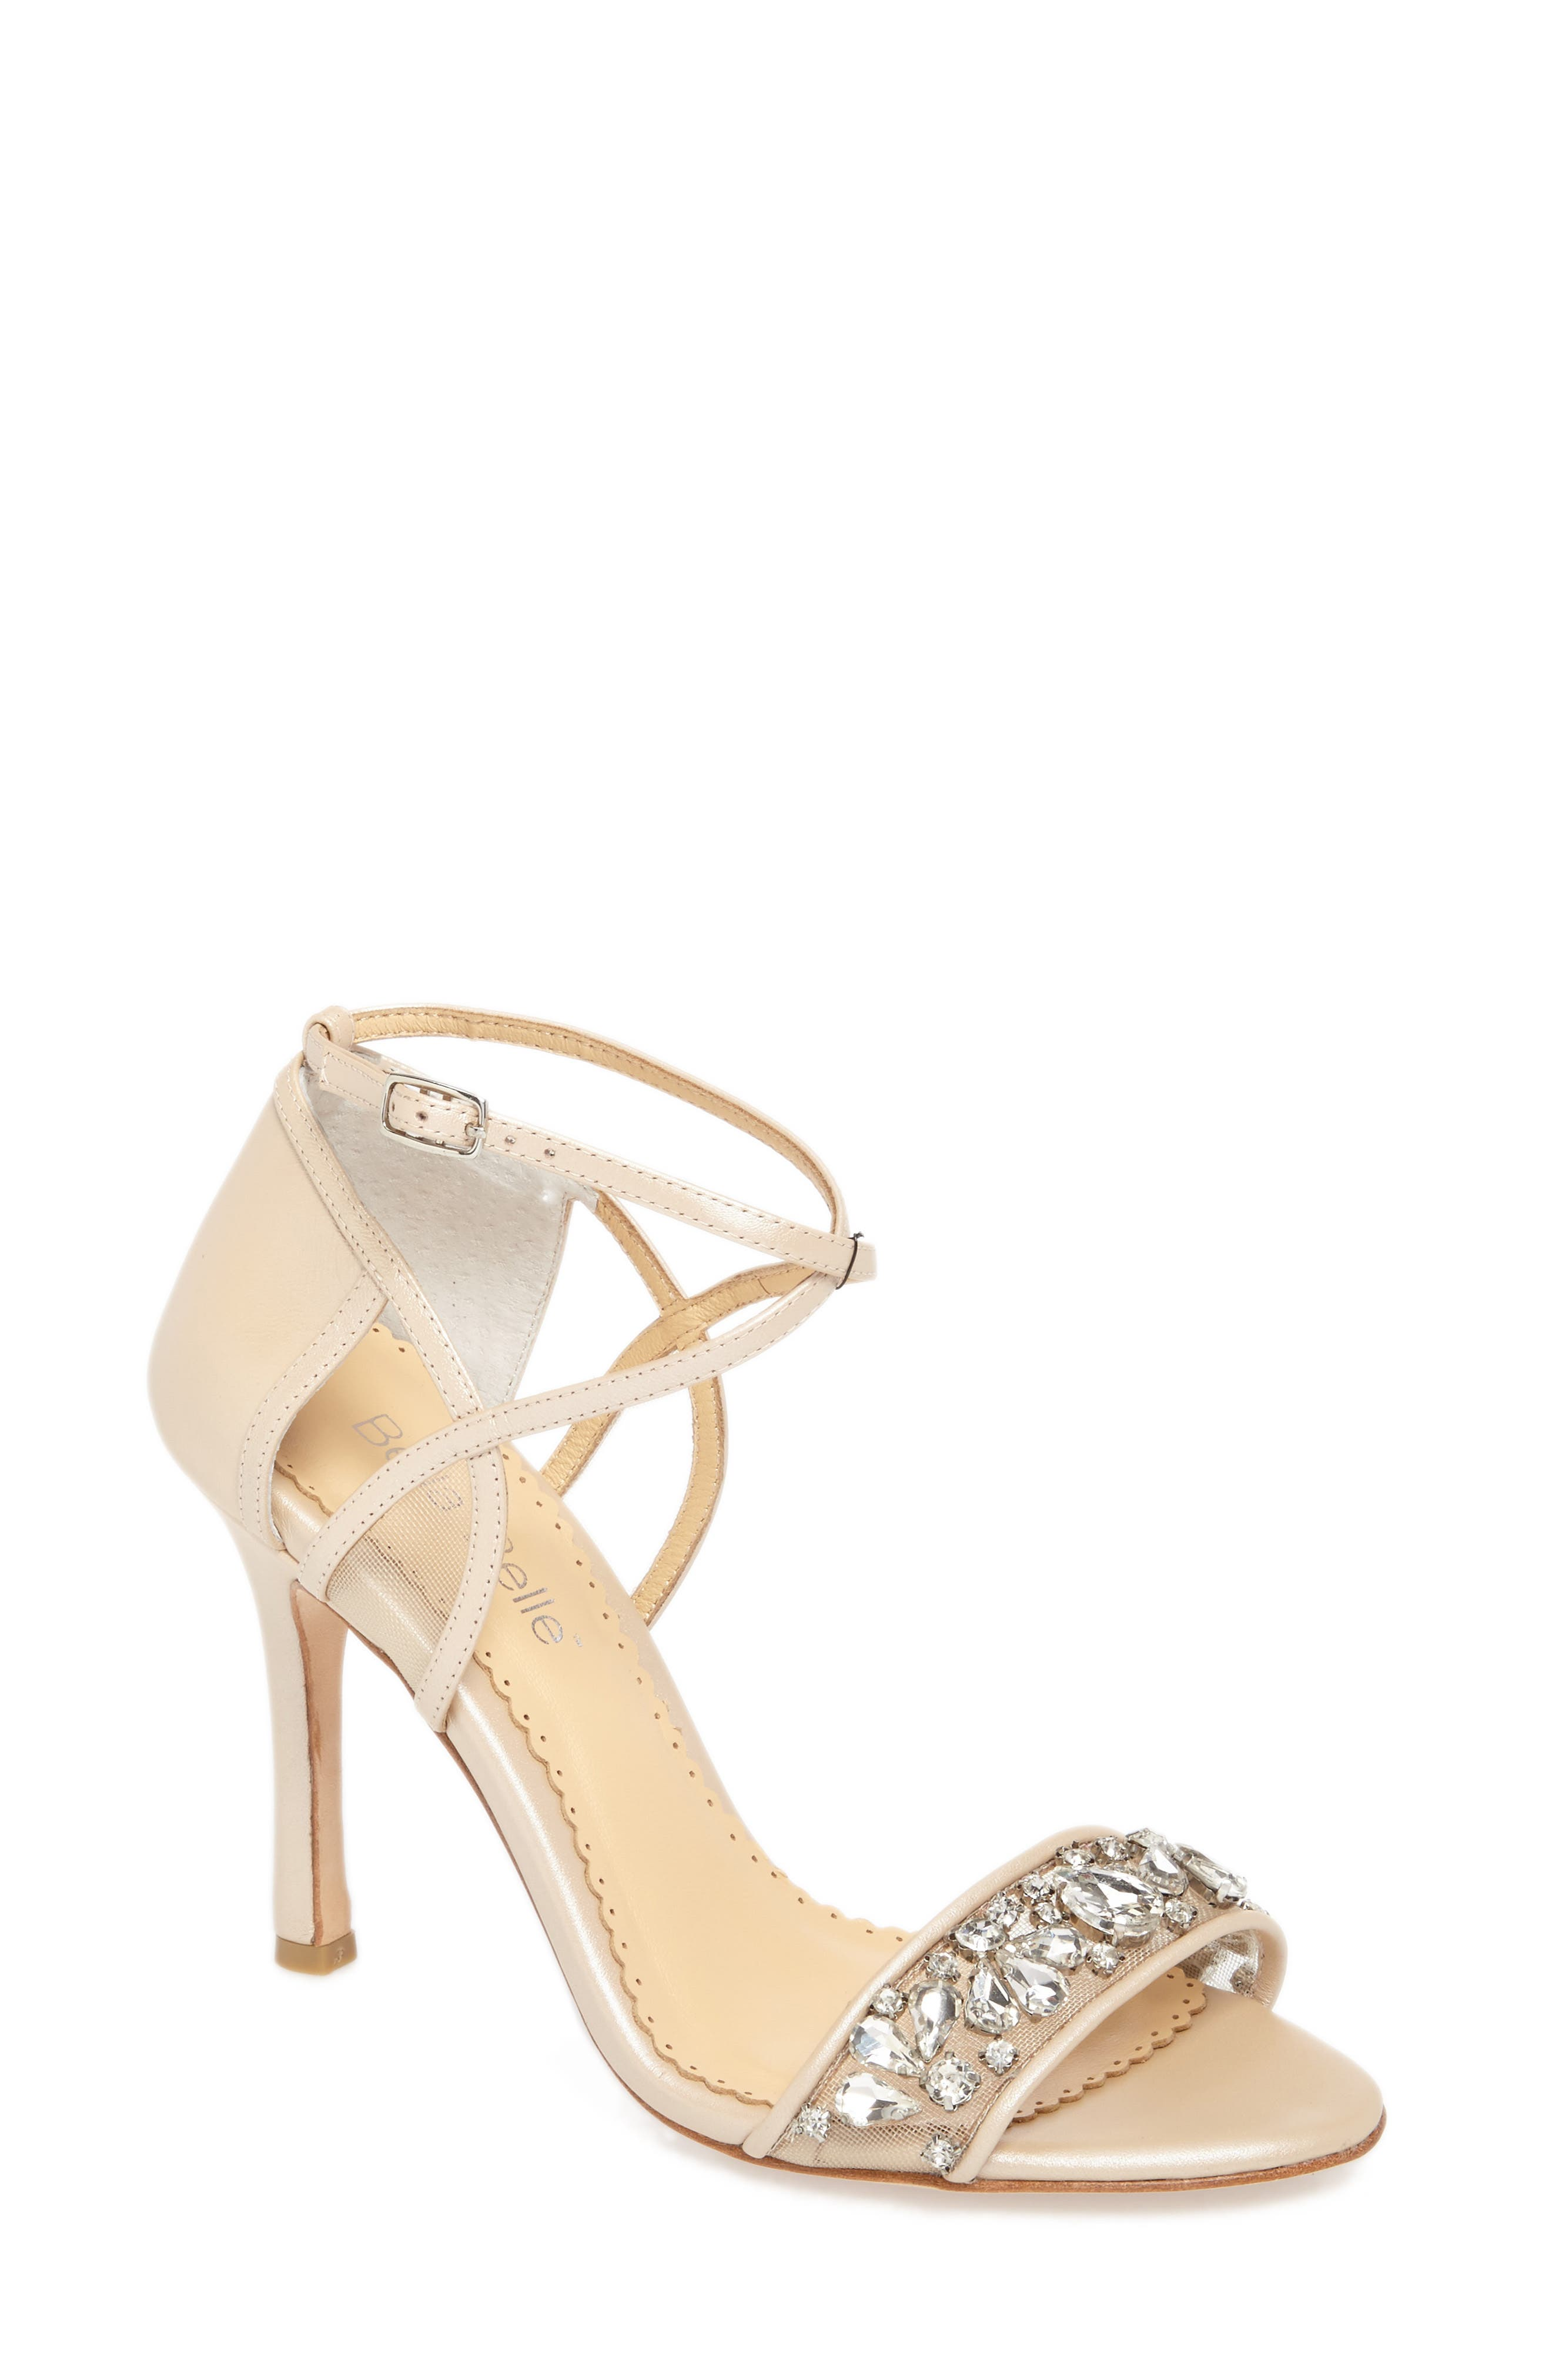 Filipa Embellished Ankle Strap Sandal,                             Main thumbnail 1, color,                             NUDE LEATHER